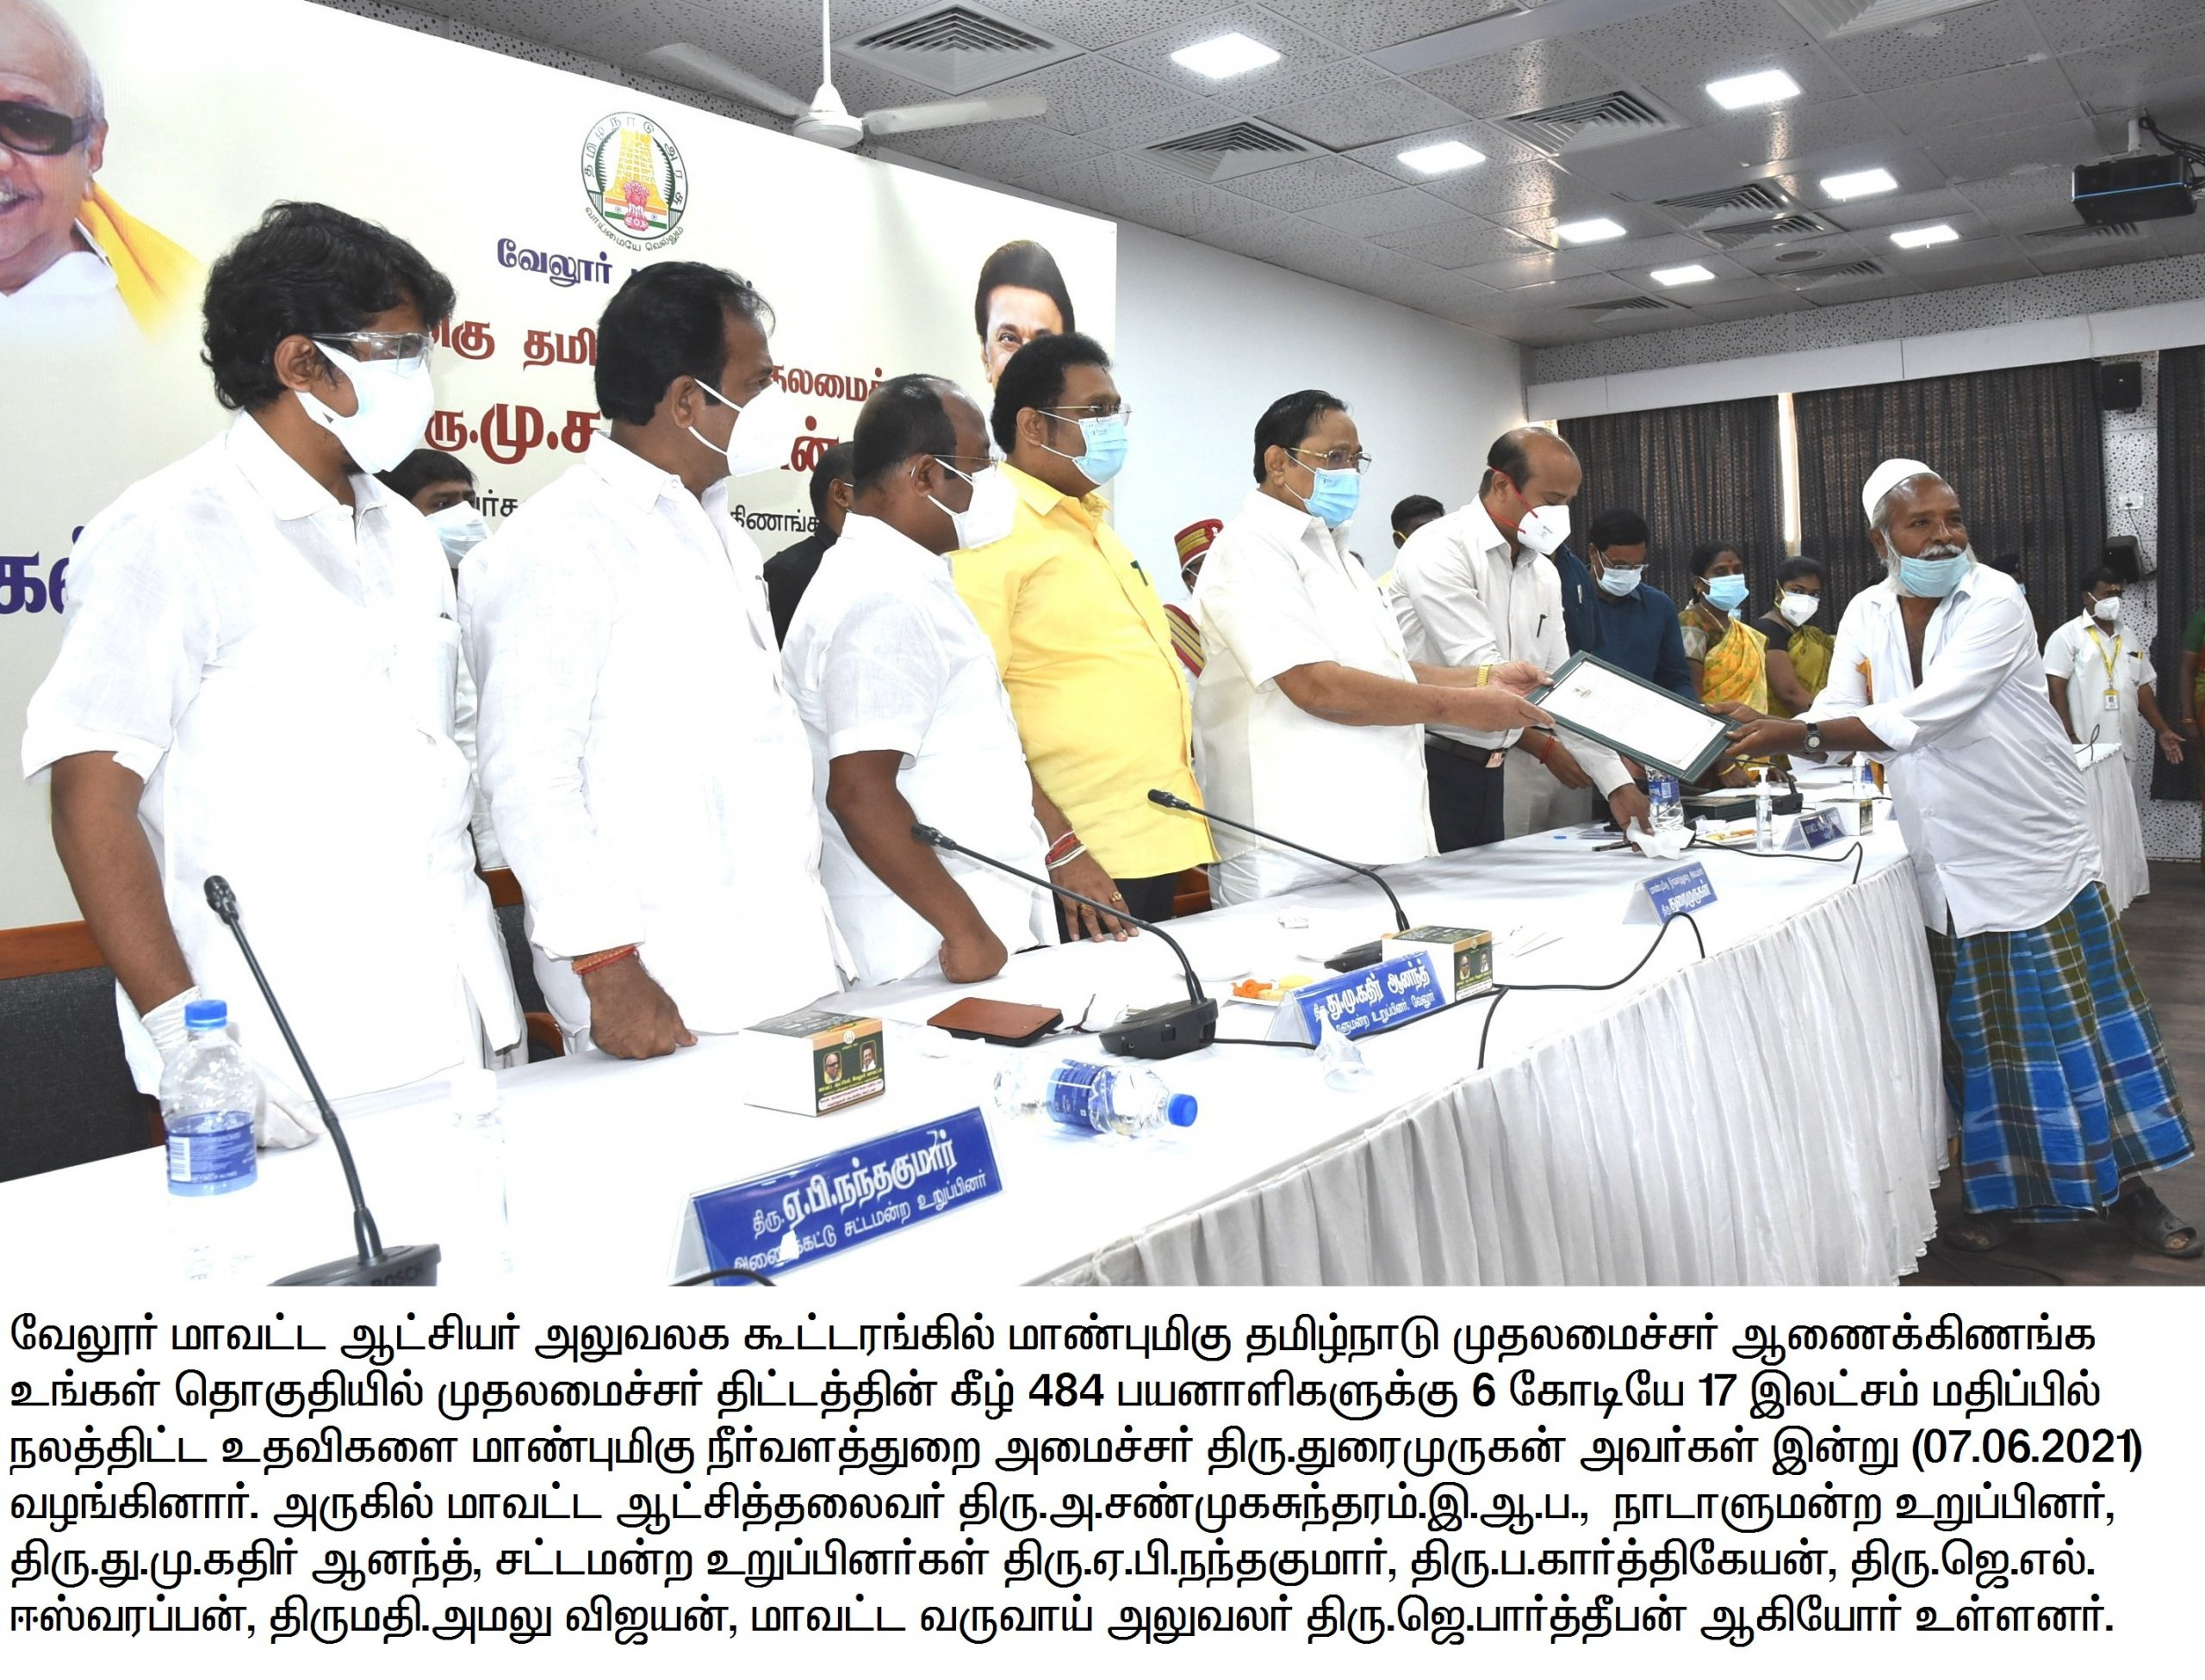 Honorable Minister Given Welfare Benefits to Peoples 07-06-2021